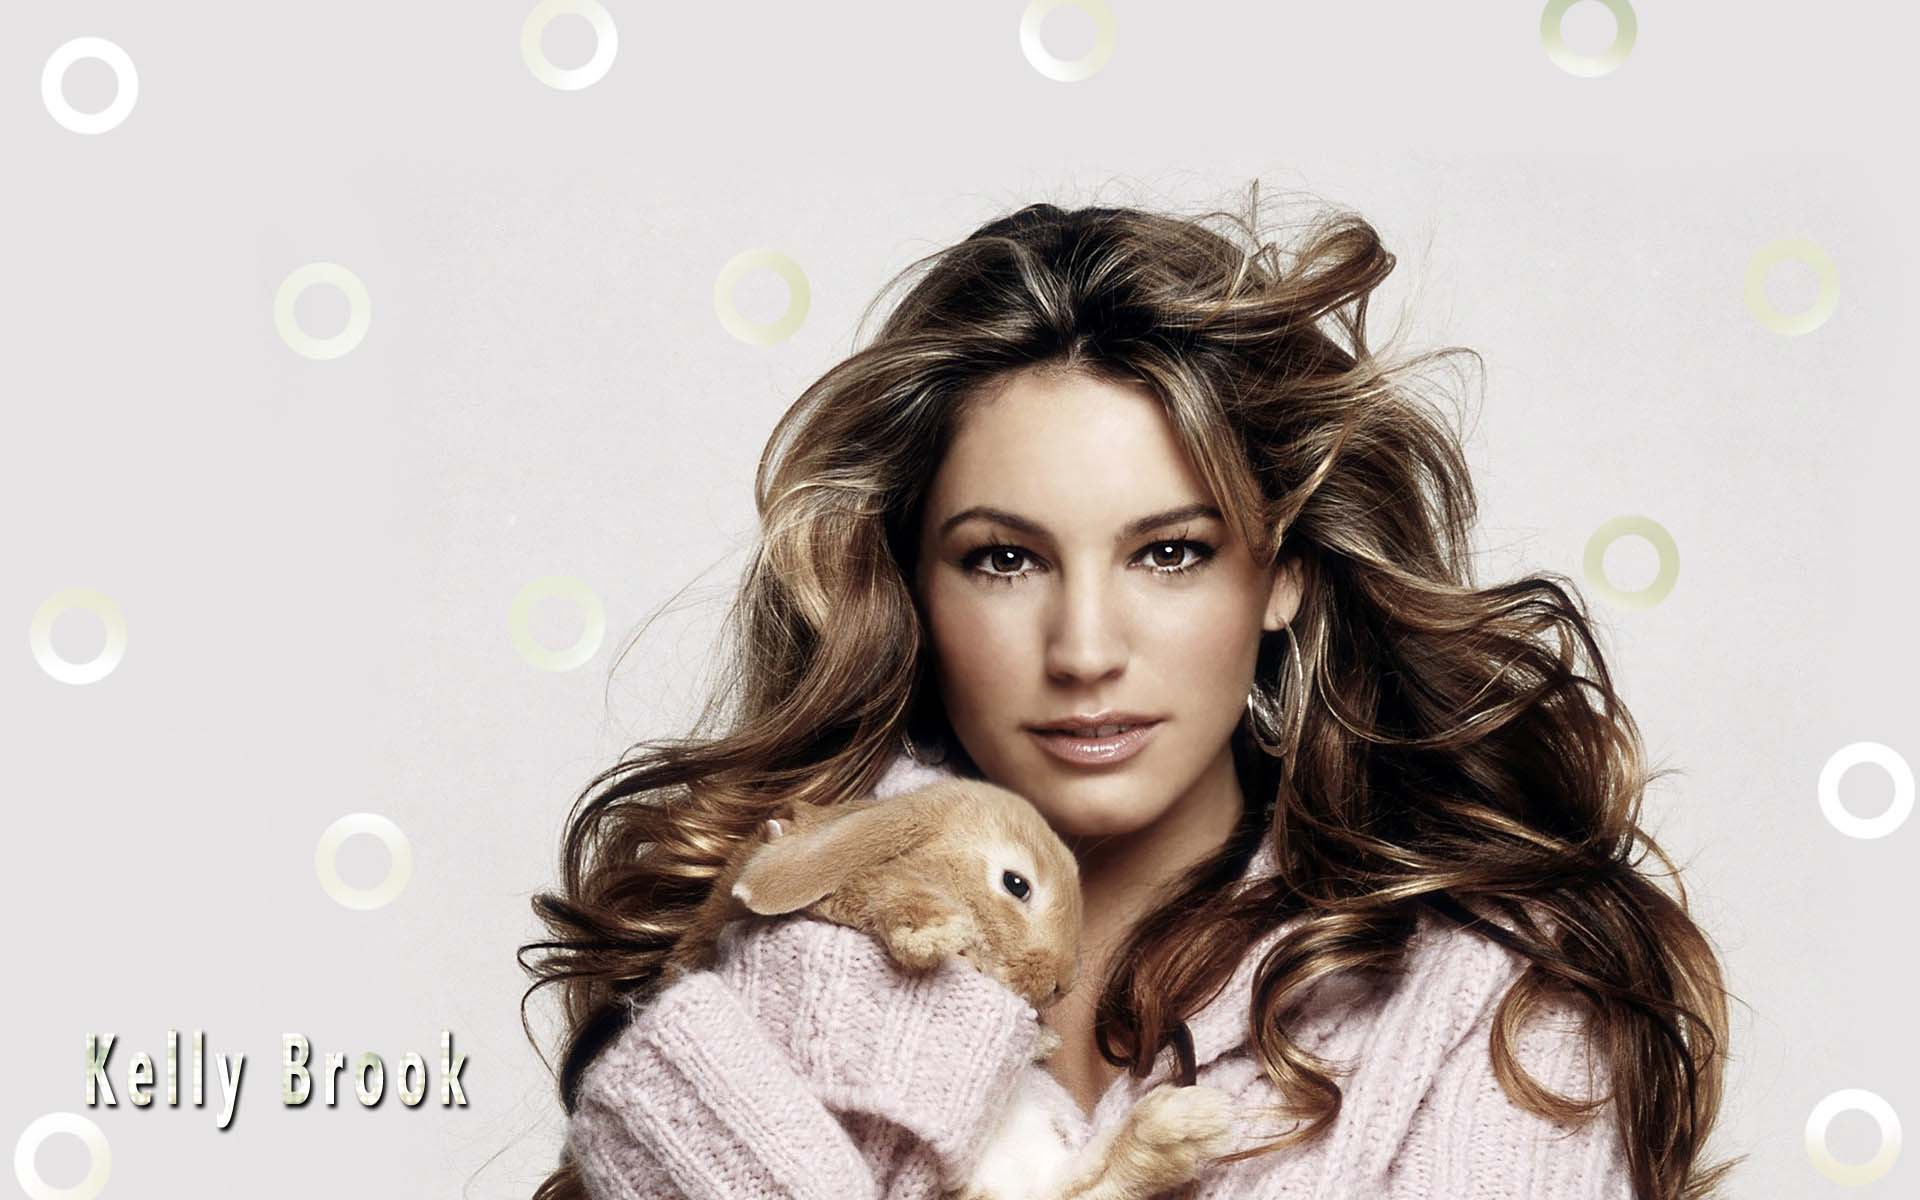 Desktop Nice Kelly Brook Image Free Download